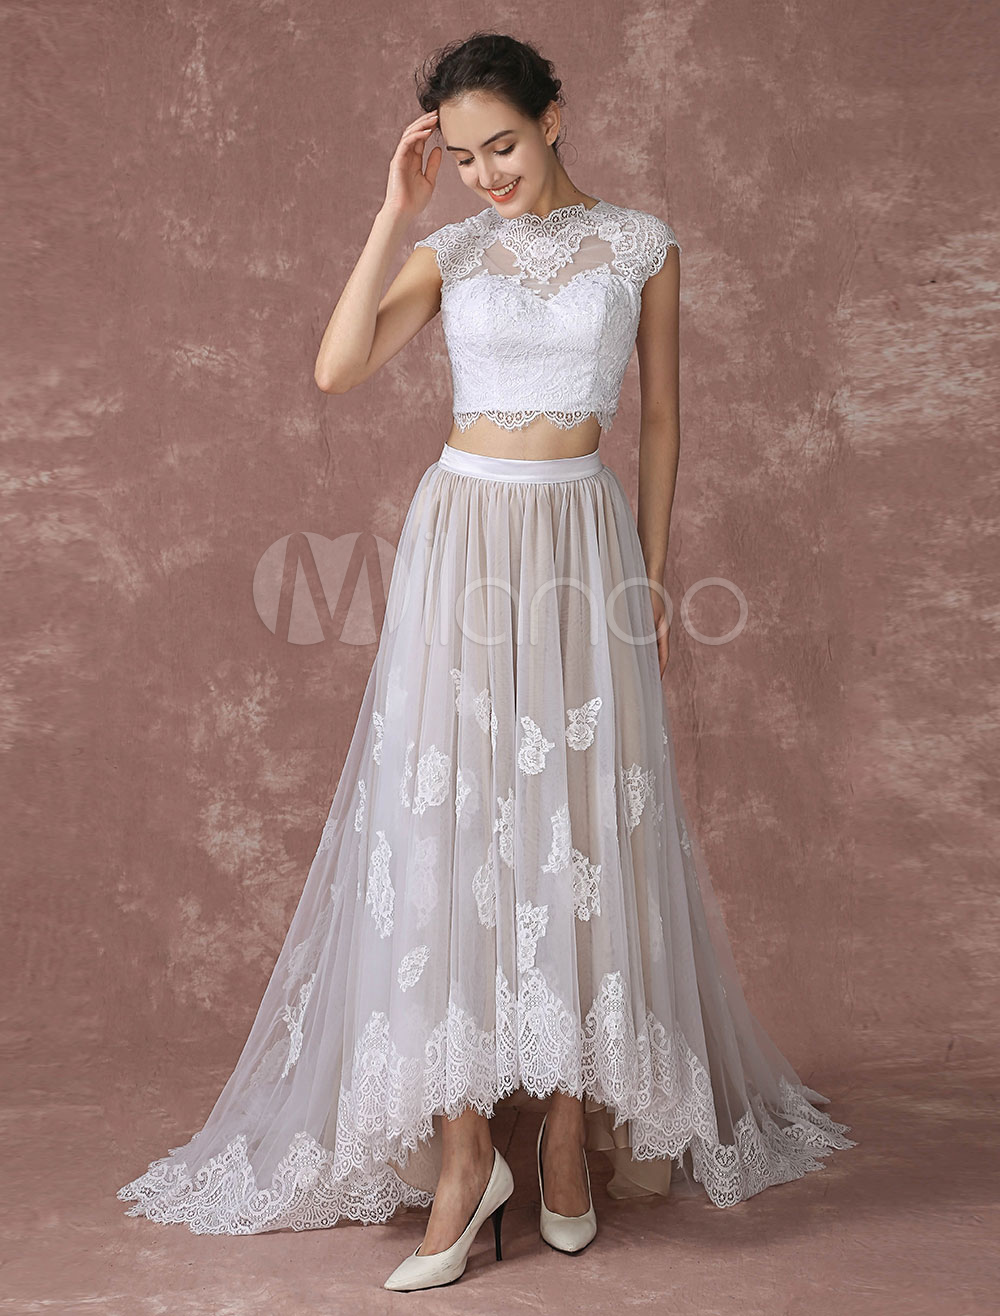 Crop top lace wedding dress high low tulle bridal gown for Free wedding dresses low income